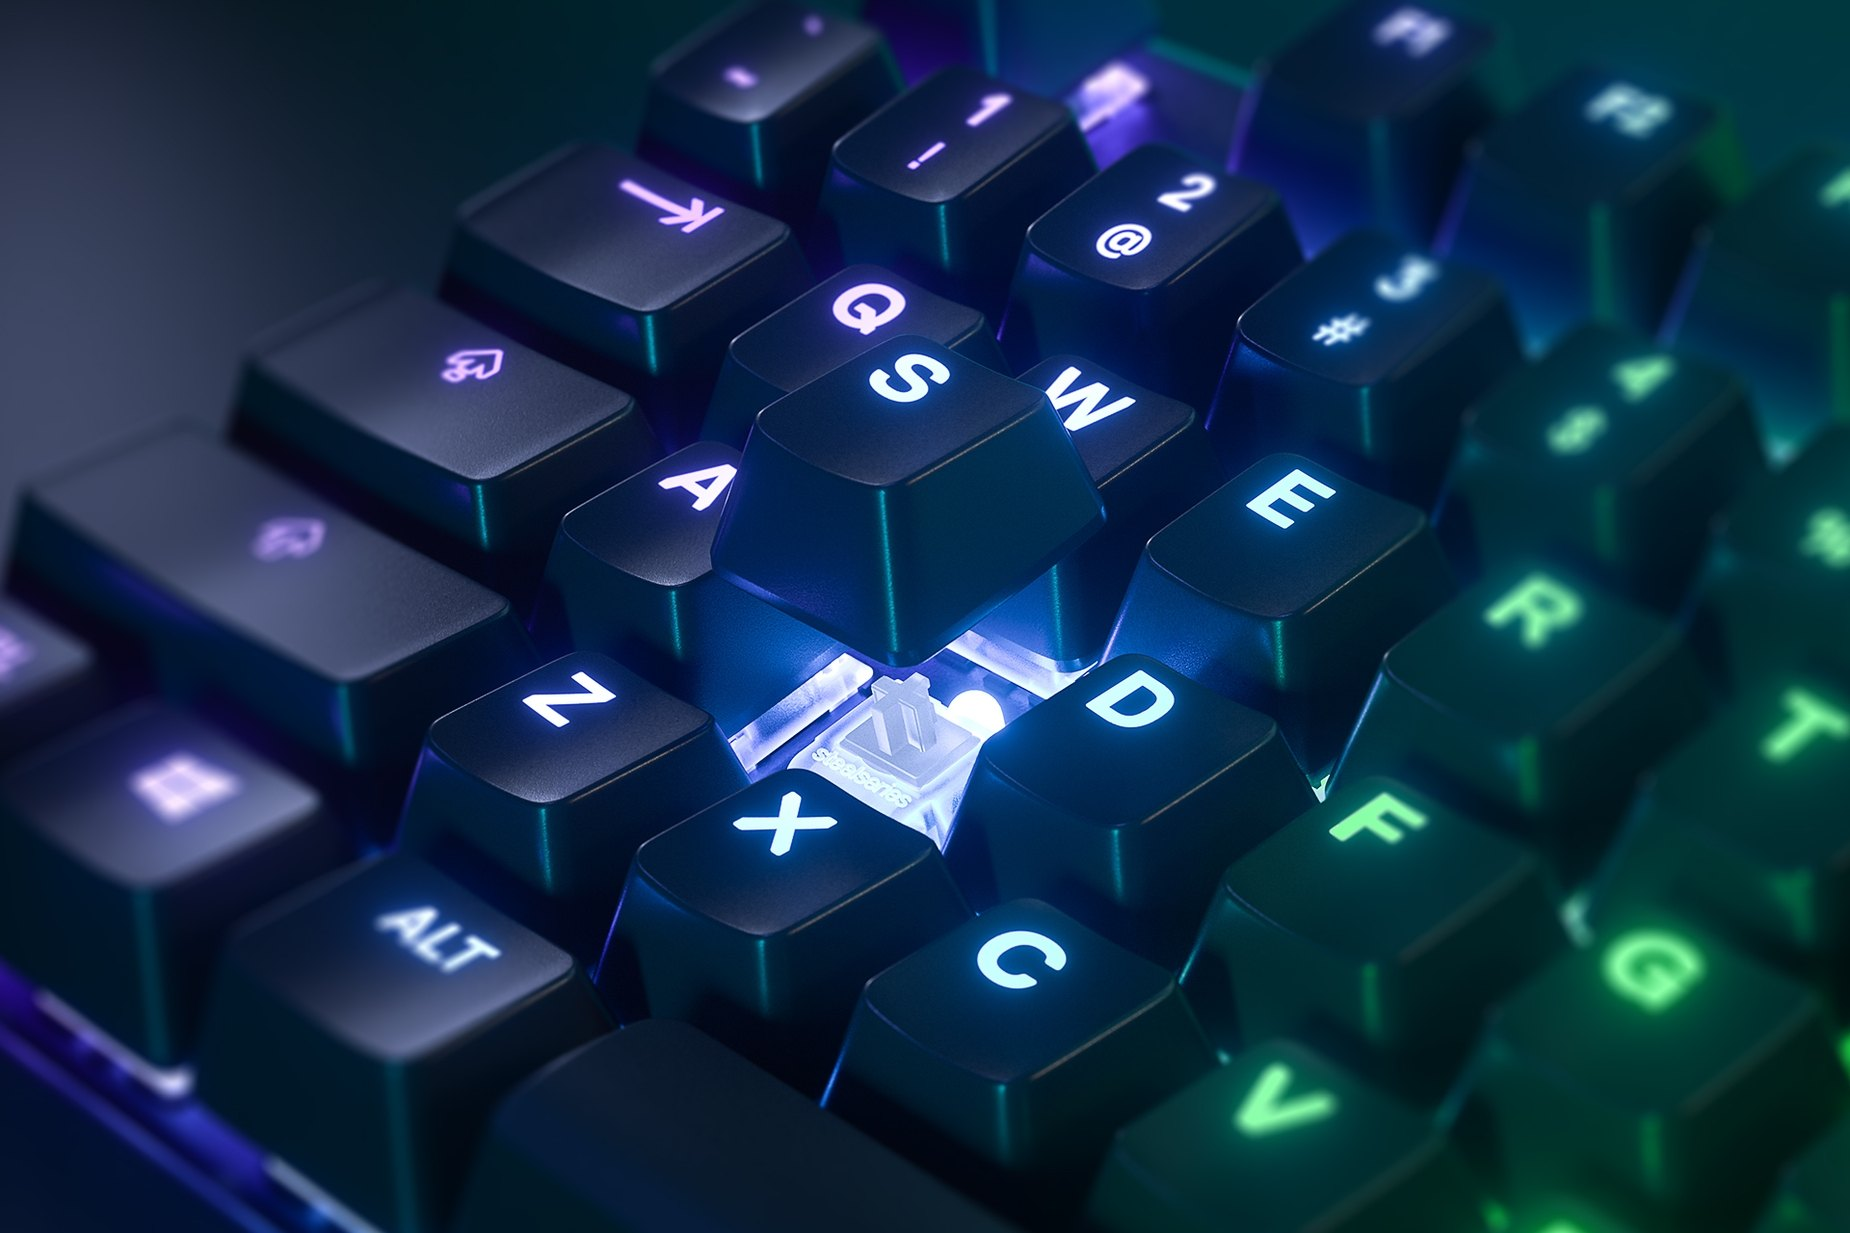 Zoomed in view of a single key on the French - Apex Pro TKL gaming keyboard, the key is raised up to show the SteelSeries OmniPoint Adjustable Mechanical Switch underneath